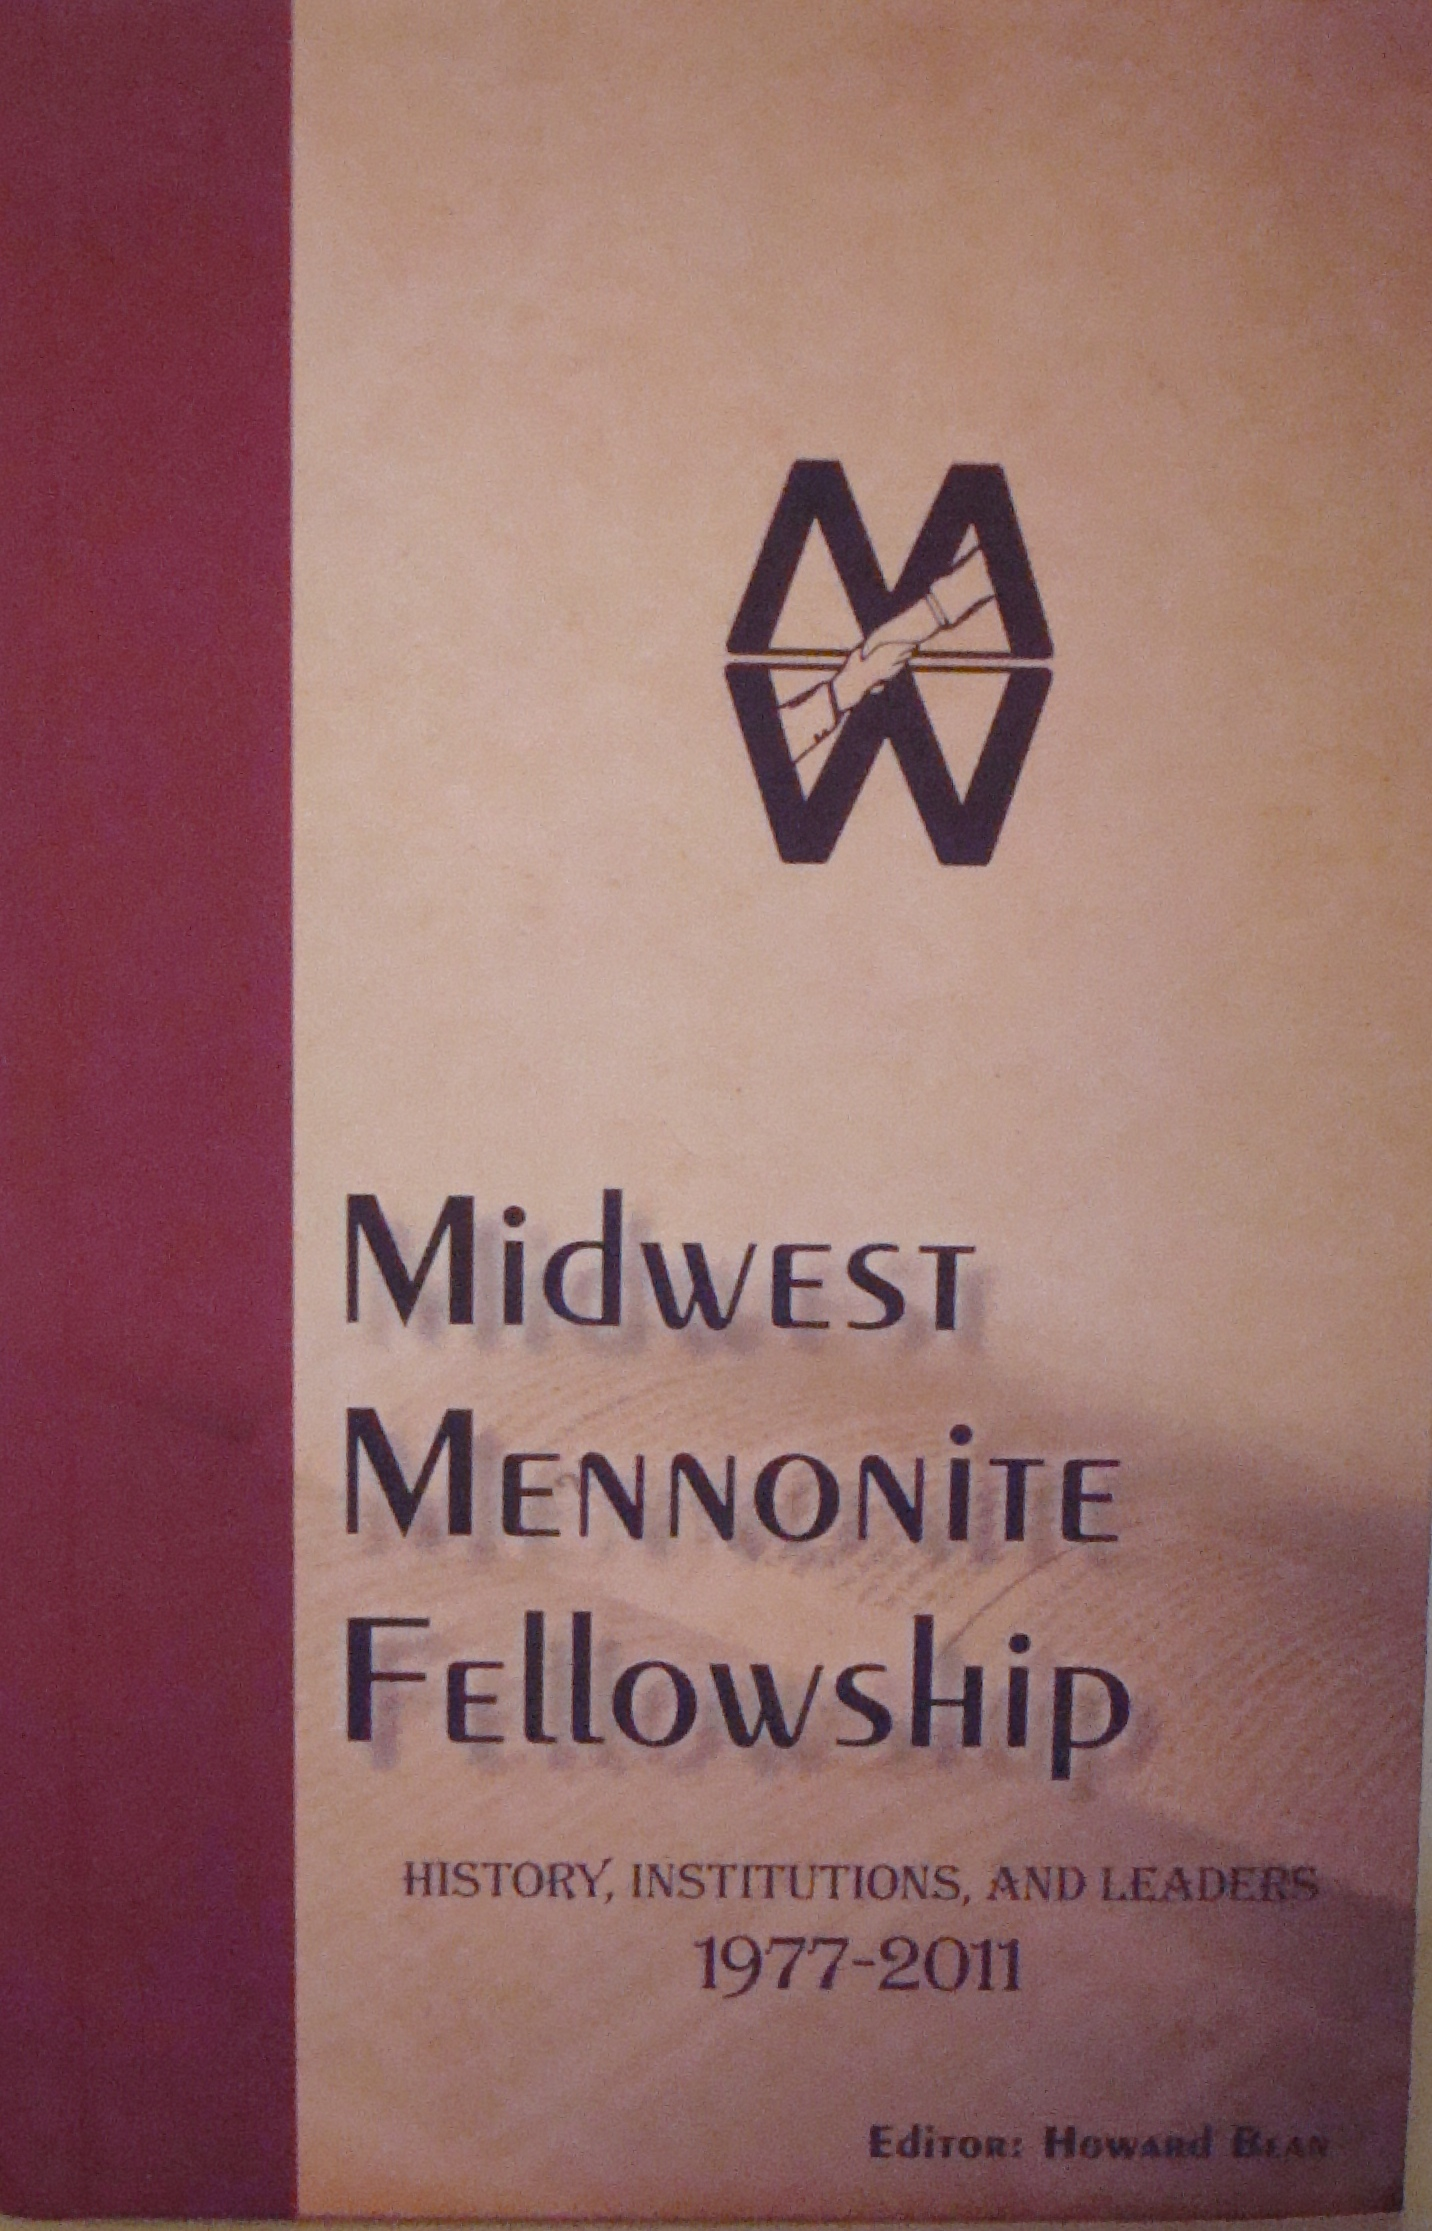 Midwest Mennonite Fellowship History, Institutions, and Leaders